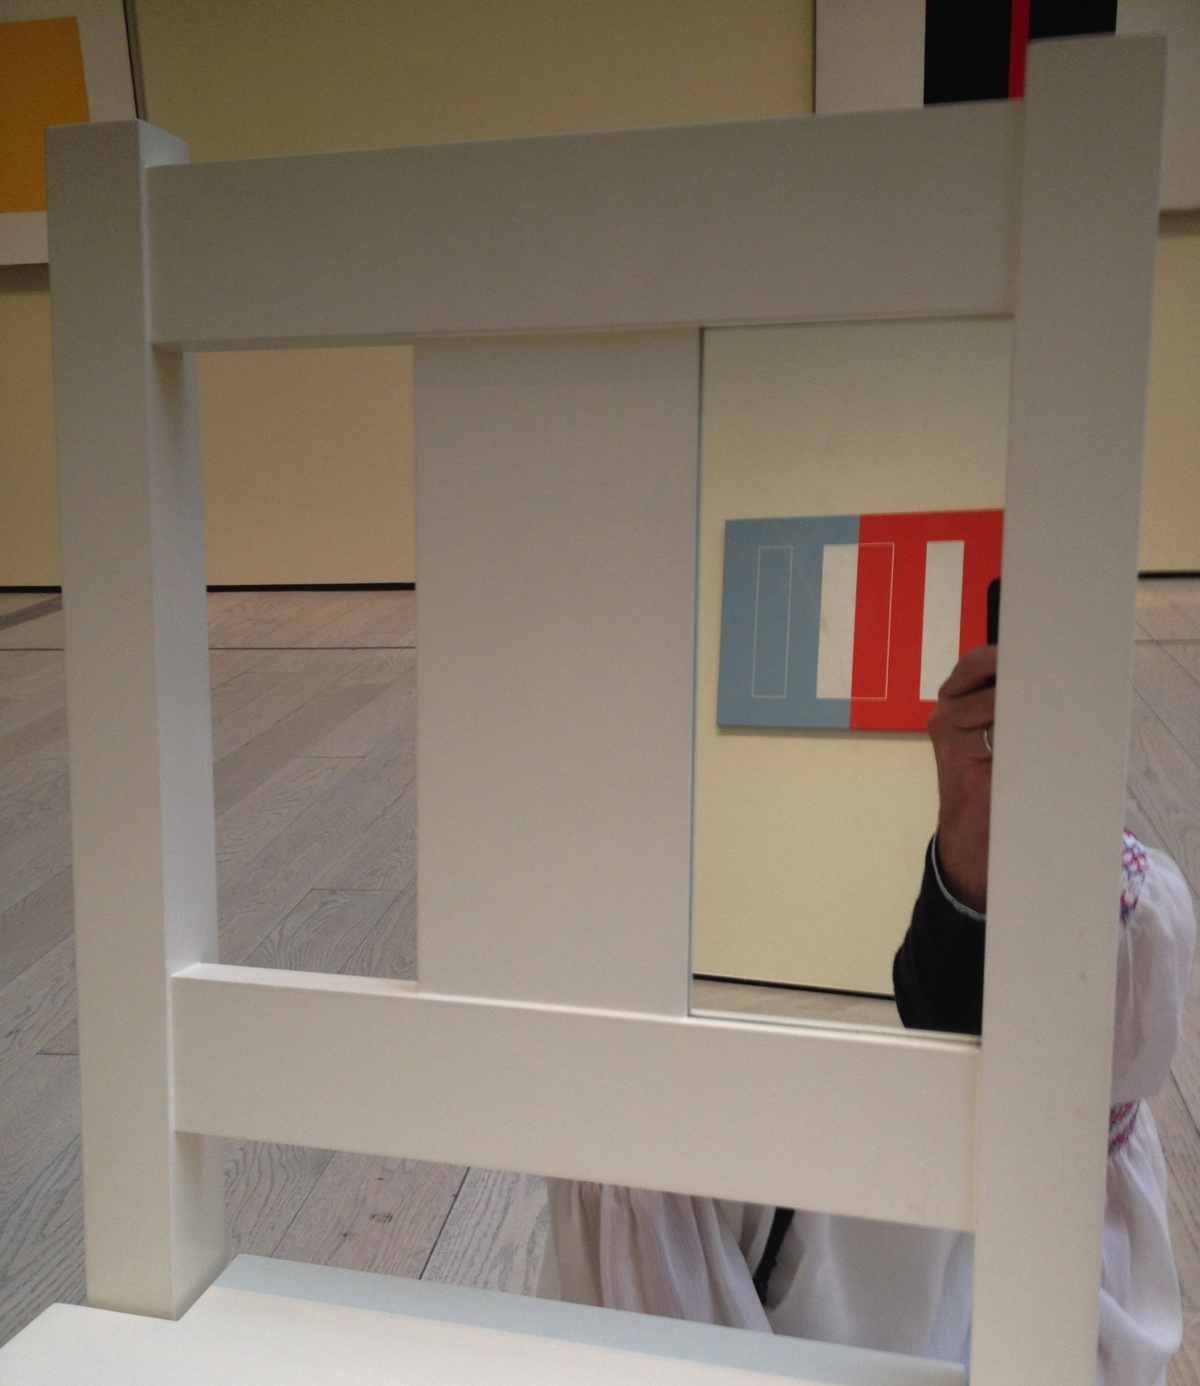 mclaughlin_makin_mirror_lacma.jpg